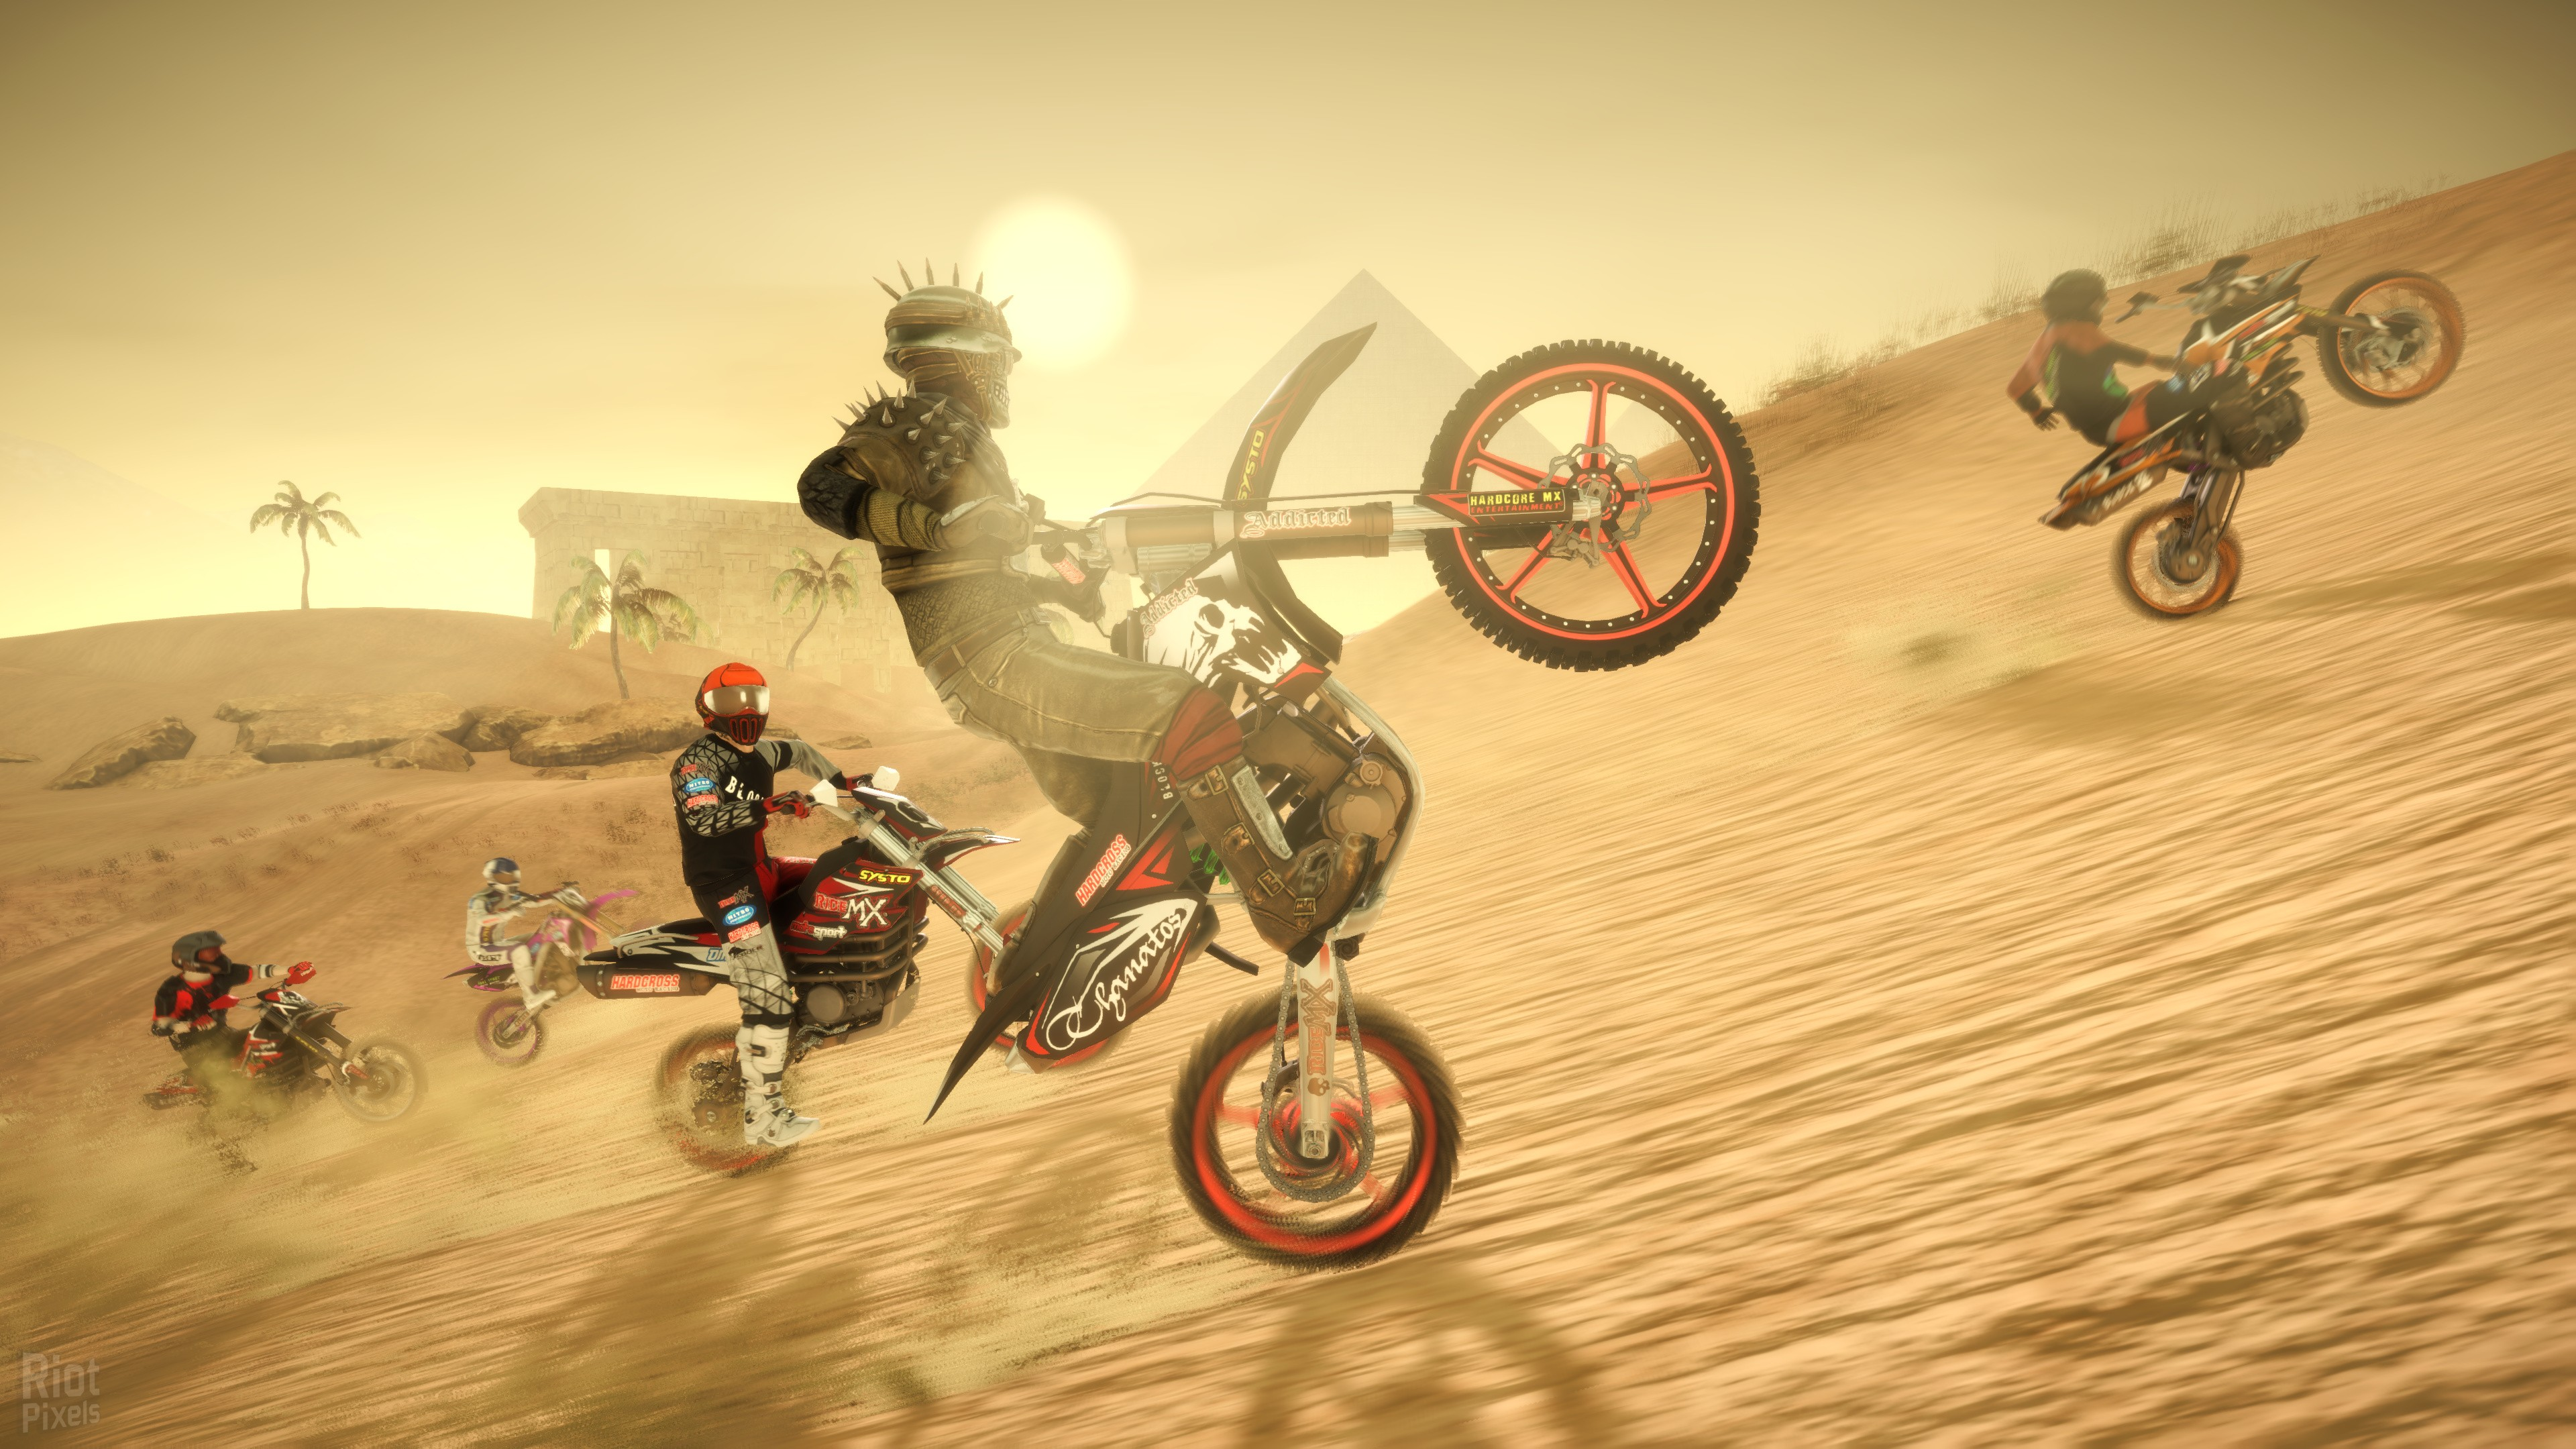 Cool Cars Wallpaper With Girls Wallpaper Mx Nitro Motocross Extreme Pc Xbox One Ps4